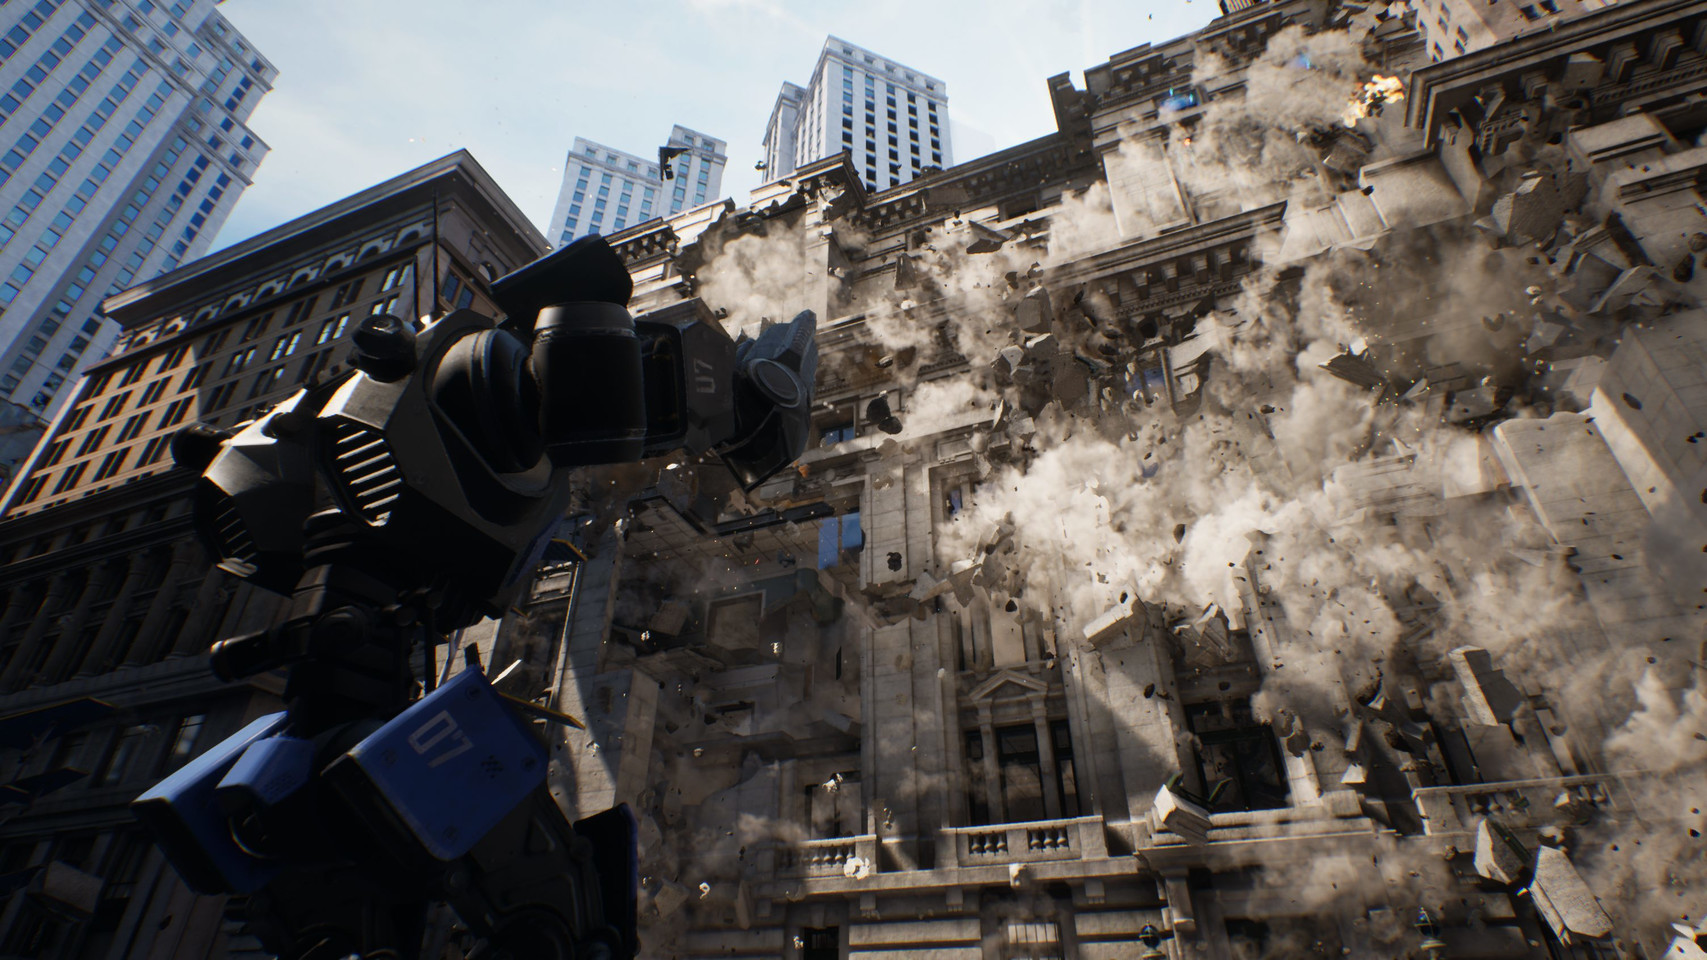 EPIC Games Shows Off Unreal Engine 4 23 Physics, Destruction System